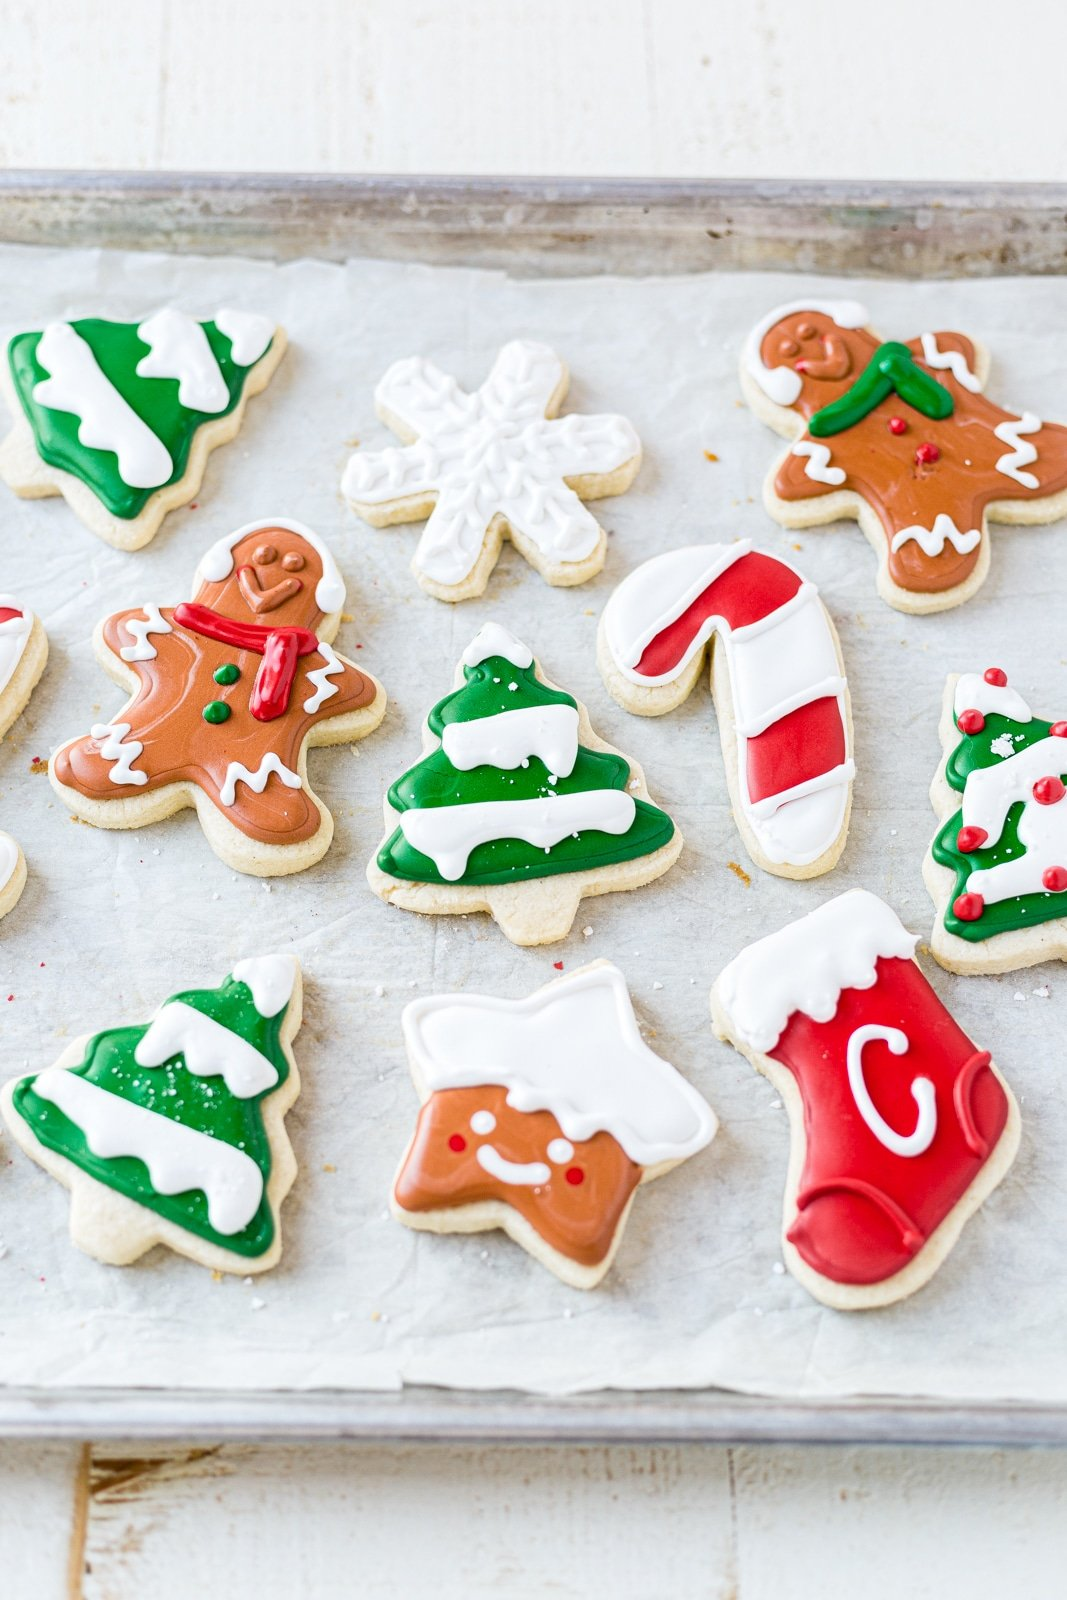 10 gluten free sugar cookies on a baking sheet decorated for christmas with royal icing